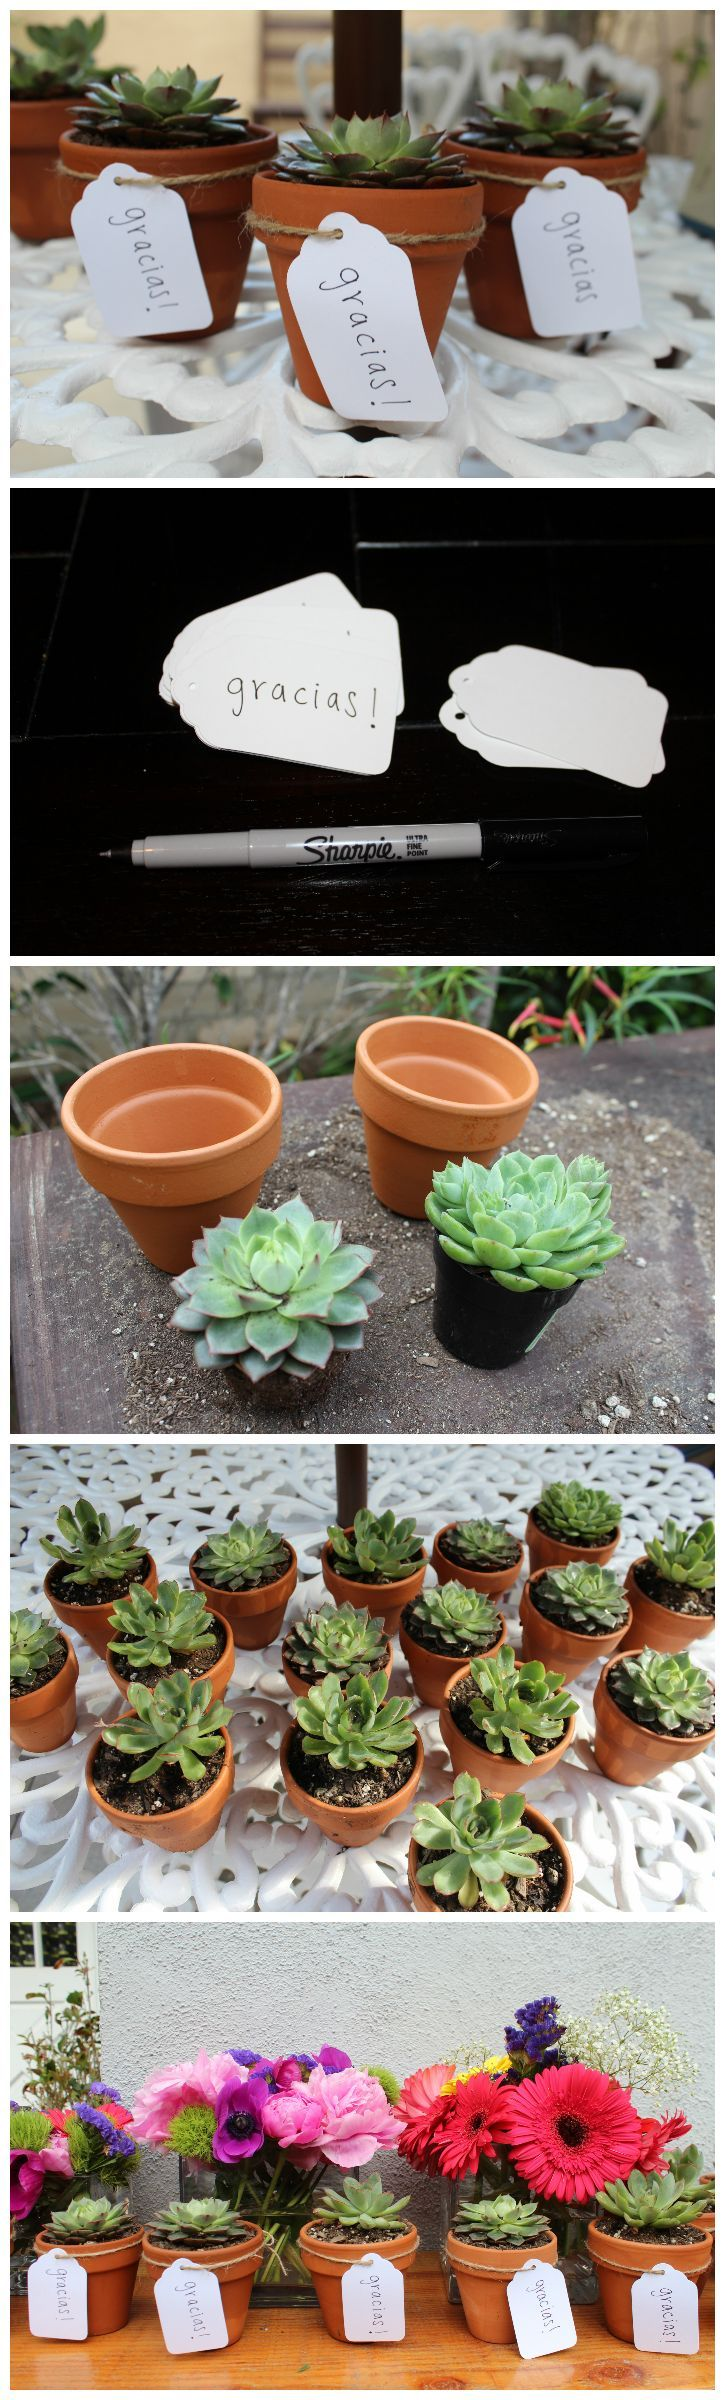 Party favors, fiesta, cinco de mayo, mexican themed, birthday party, succulents